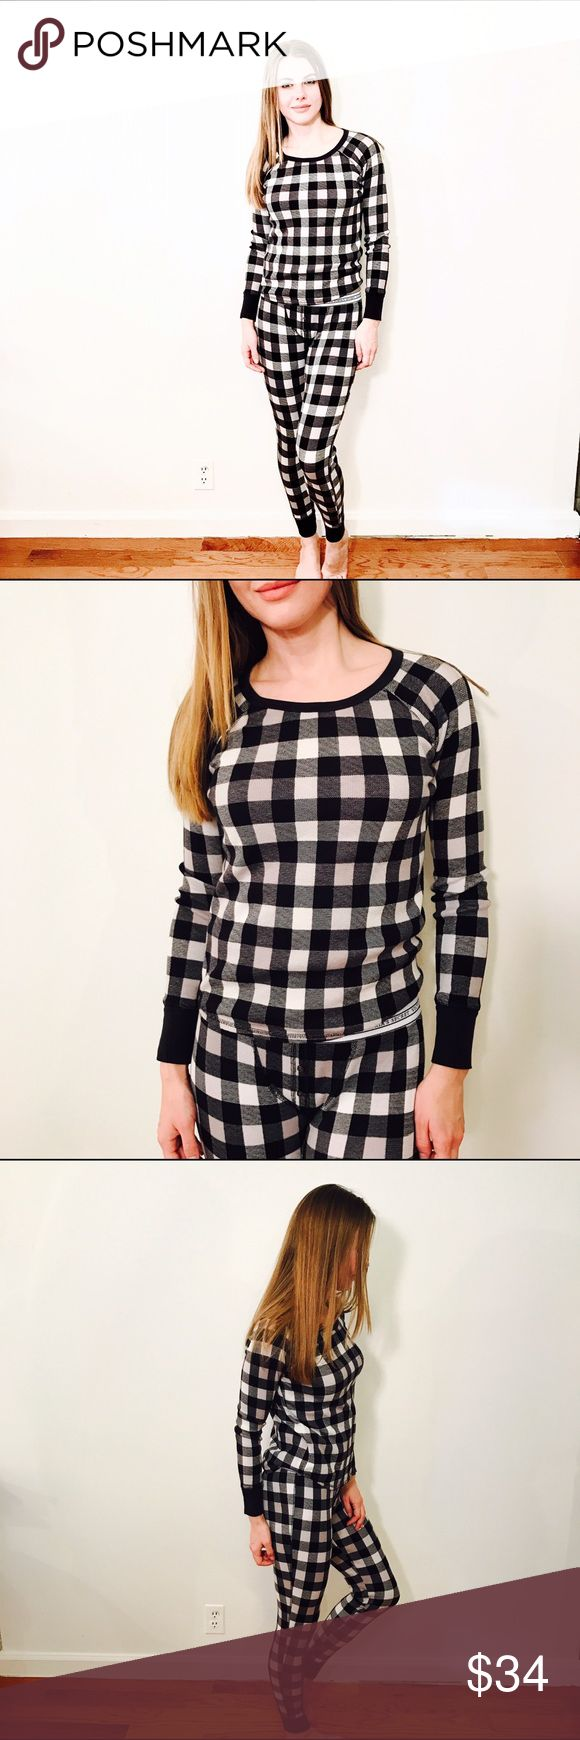 """VICTORIAS SECRET CHECKERED THERMAL LOUNGE TOP #746 VICTORIA'S SECRET, Size S, Black gray white checkered thermal pyjama top, long sleeve.  CONDITION: EUC, No issues.  CHEST: 35"""" WAIST: 33"""" LENGTH: 21"""" INSEAM:  *All measurements taken while item is laid flat (doubled when necessary) and measured across the front  MATERIAL: Cotton Elastane  STRETCH: Yes INSTAGRAM @ORNAMENTALSTONE 🚫Trading Victoria's Secret Tops"""